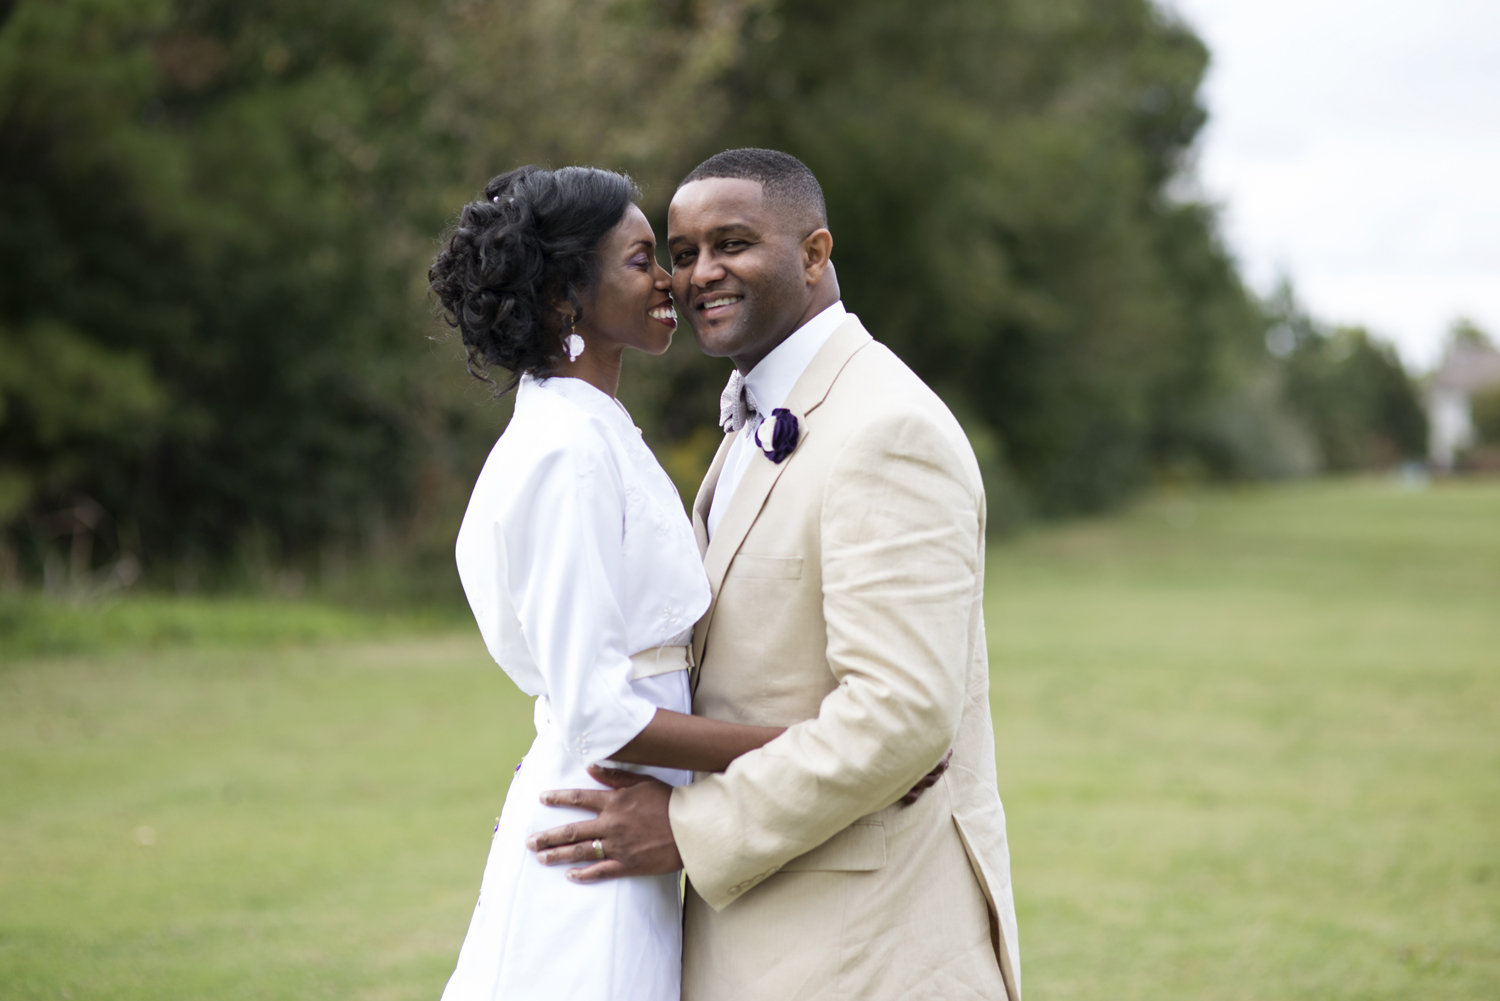 Bride and groom sharing a moment at their October wedding in Chesapeake, Virginia